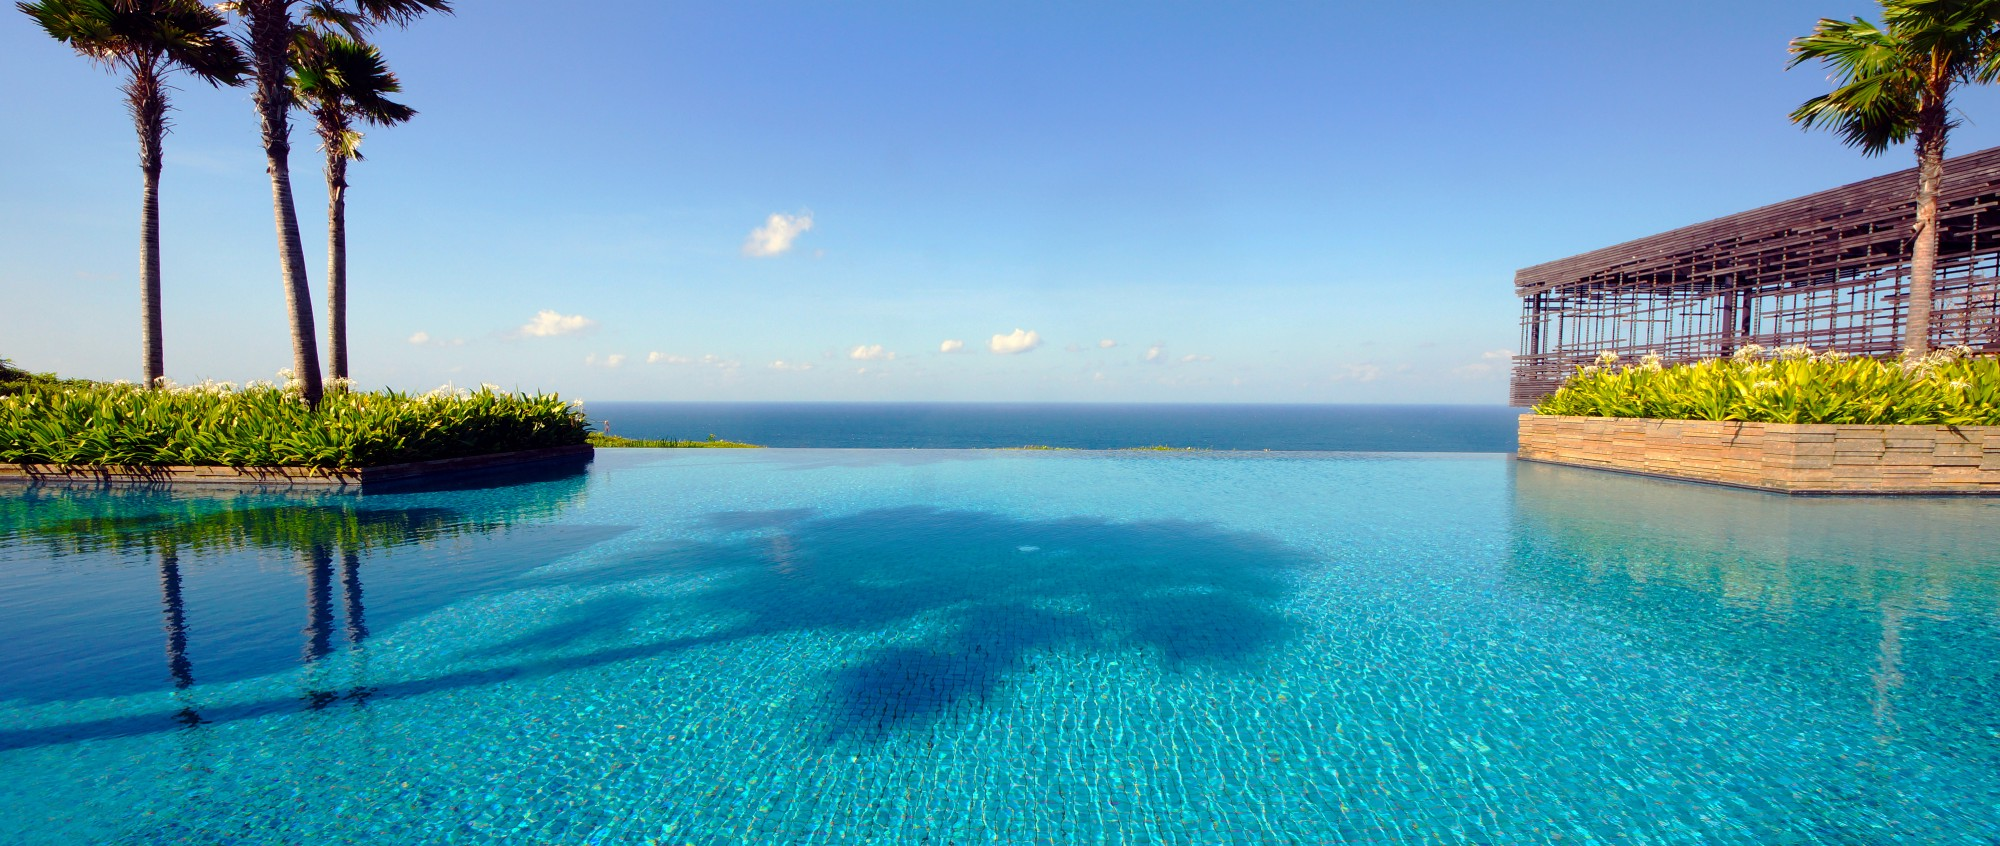 Infinity Pool Distractions Are A Nuisance But Infinity Pools Are The Real Problem